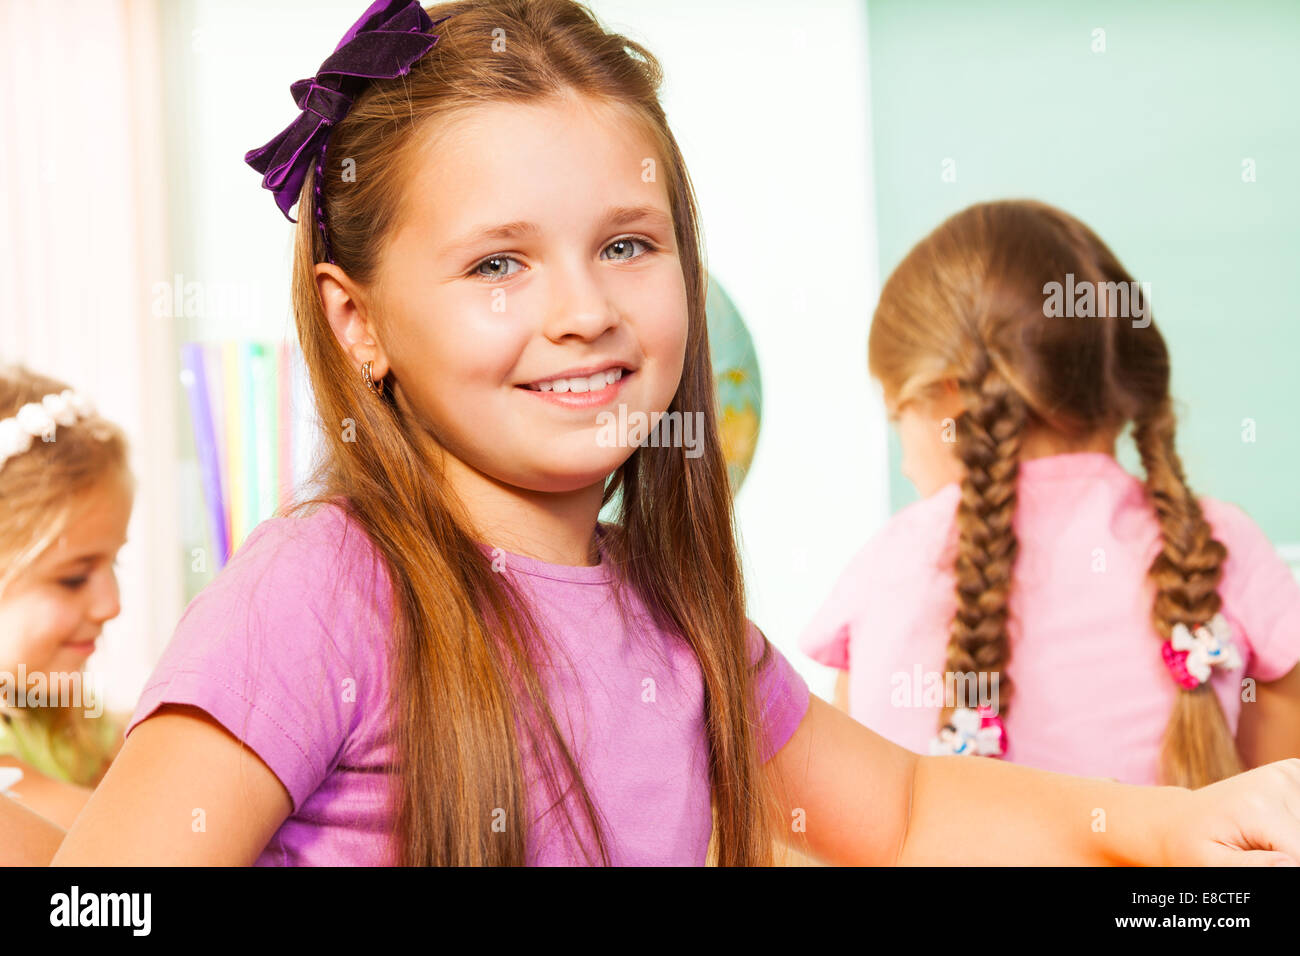 Nice girl close up view looking straight - Stock Image